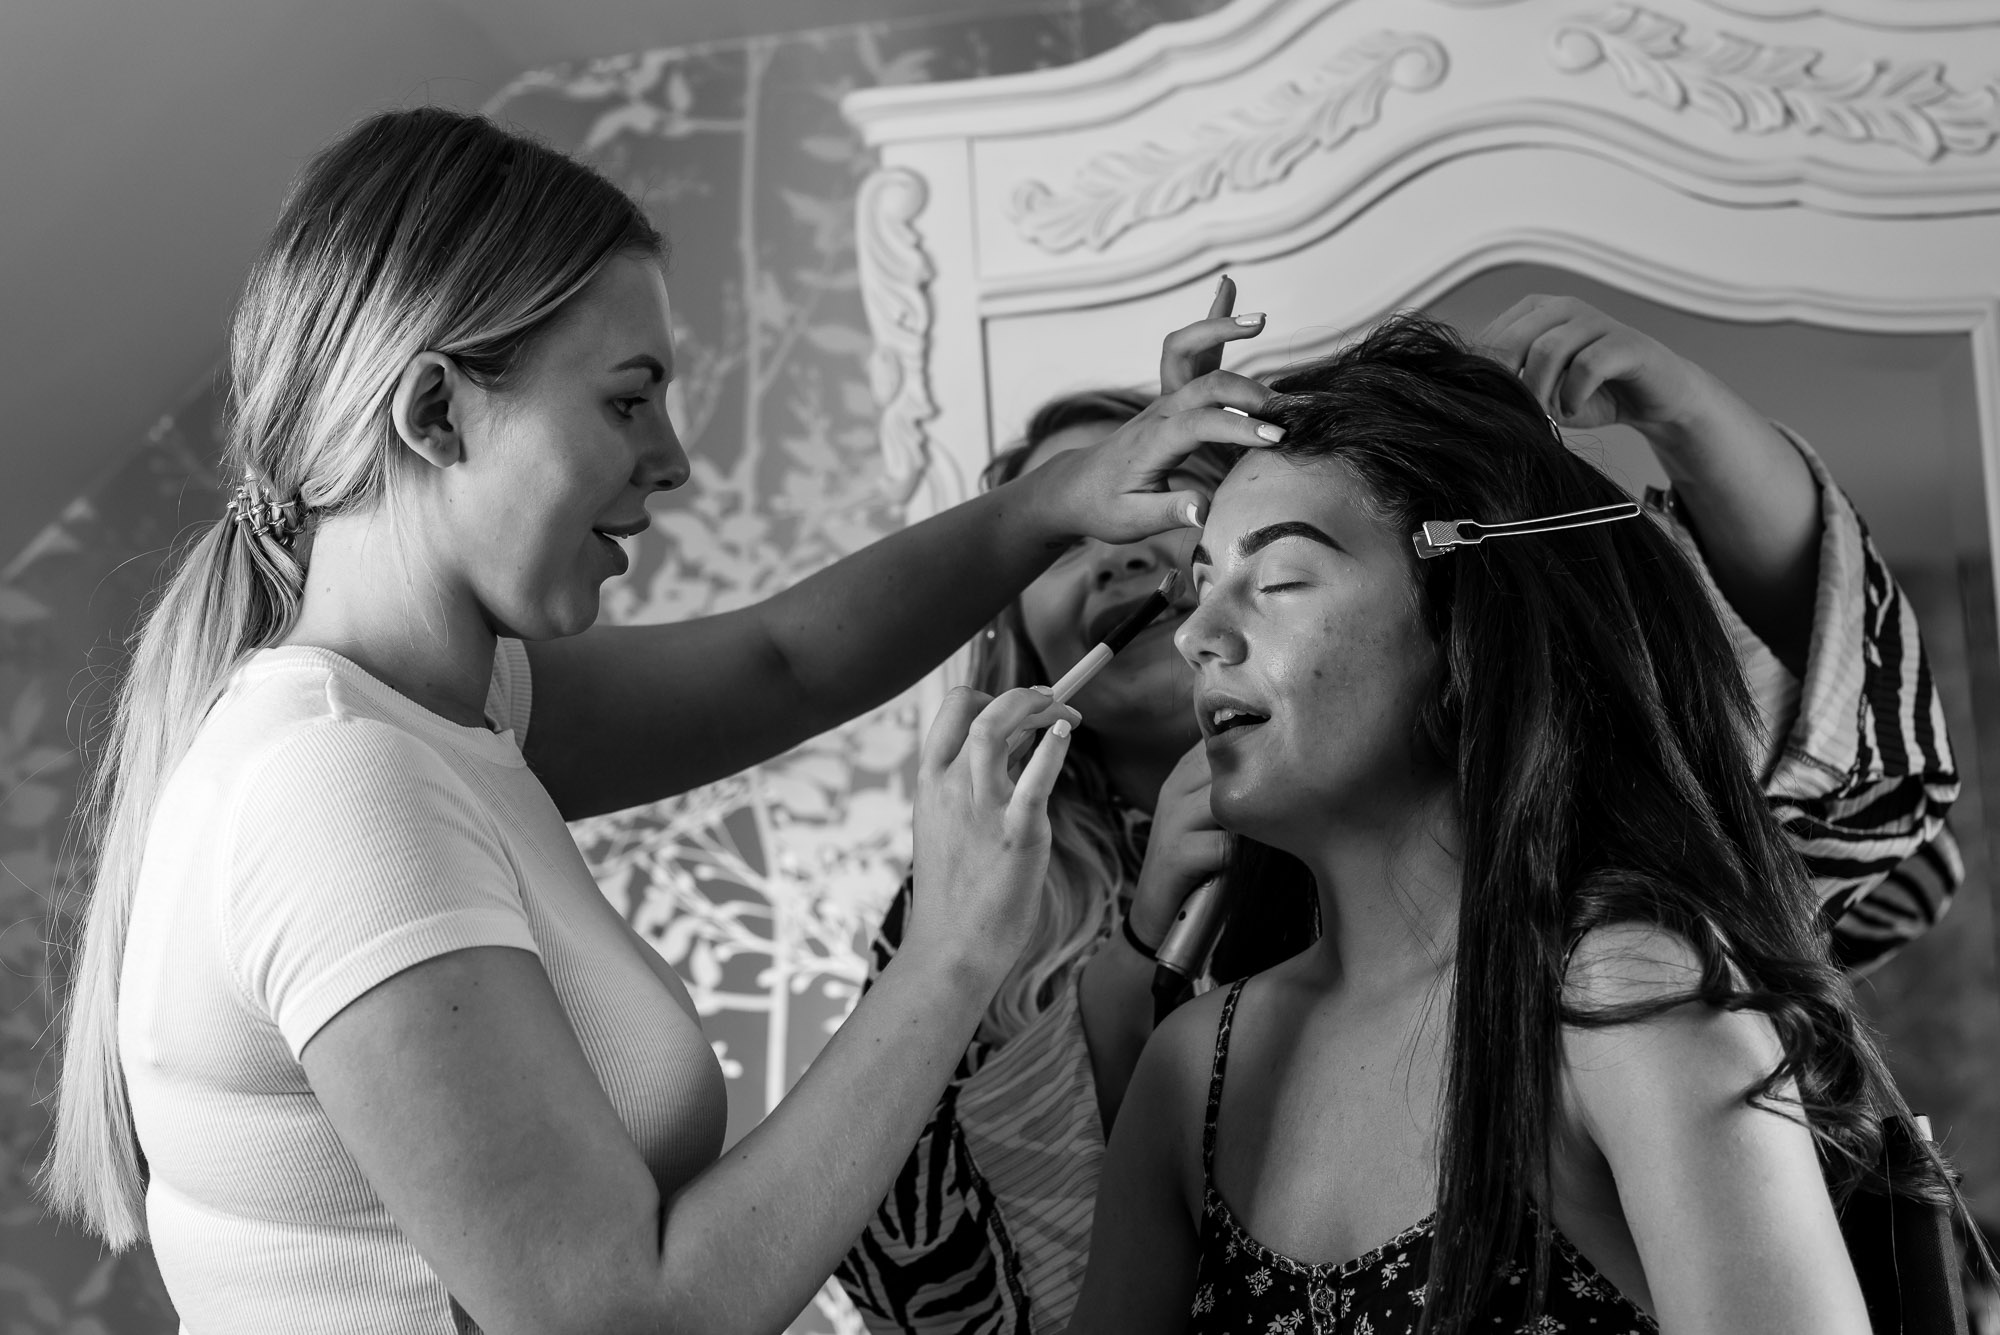 The bride having her eye makeup done during the wedding preparations